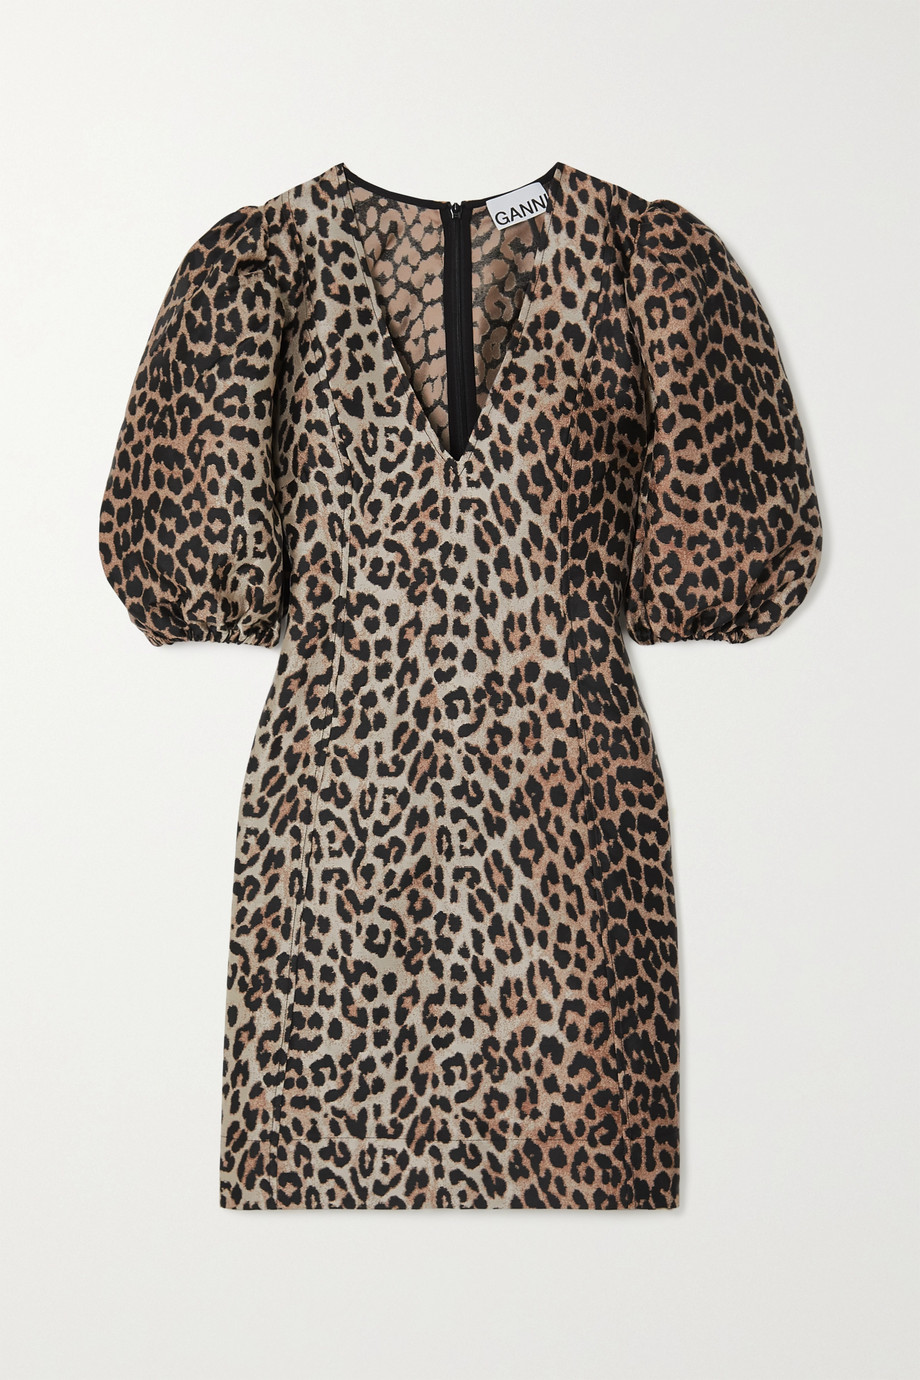 Ganni Leopard-jacquard mini dress,Leopard print